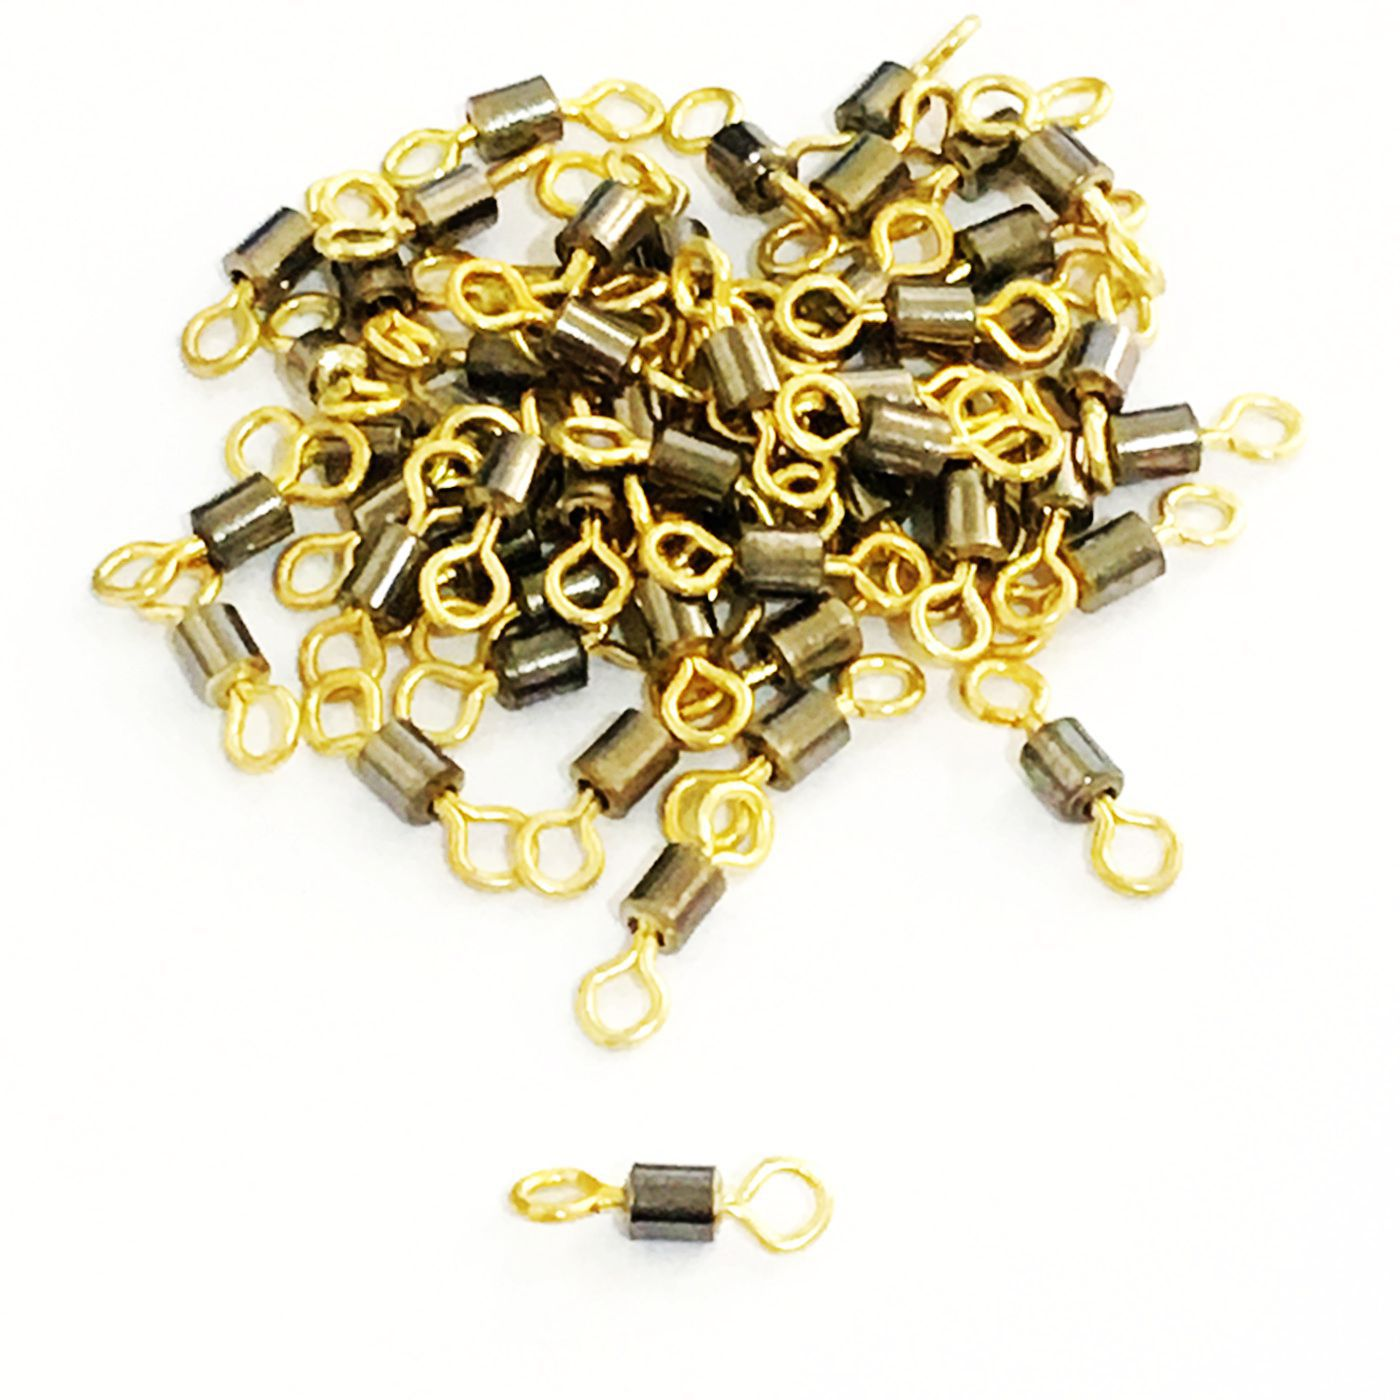 100PCS/LOT Braid Knotless Connectors Fishing Line Wire Barrel Swivel Fishing Tackle Fishhooks Crap Connector Fishing